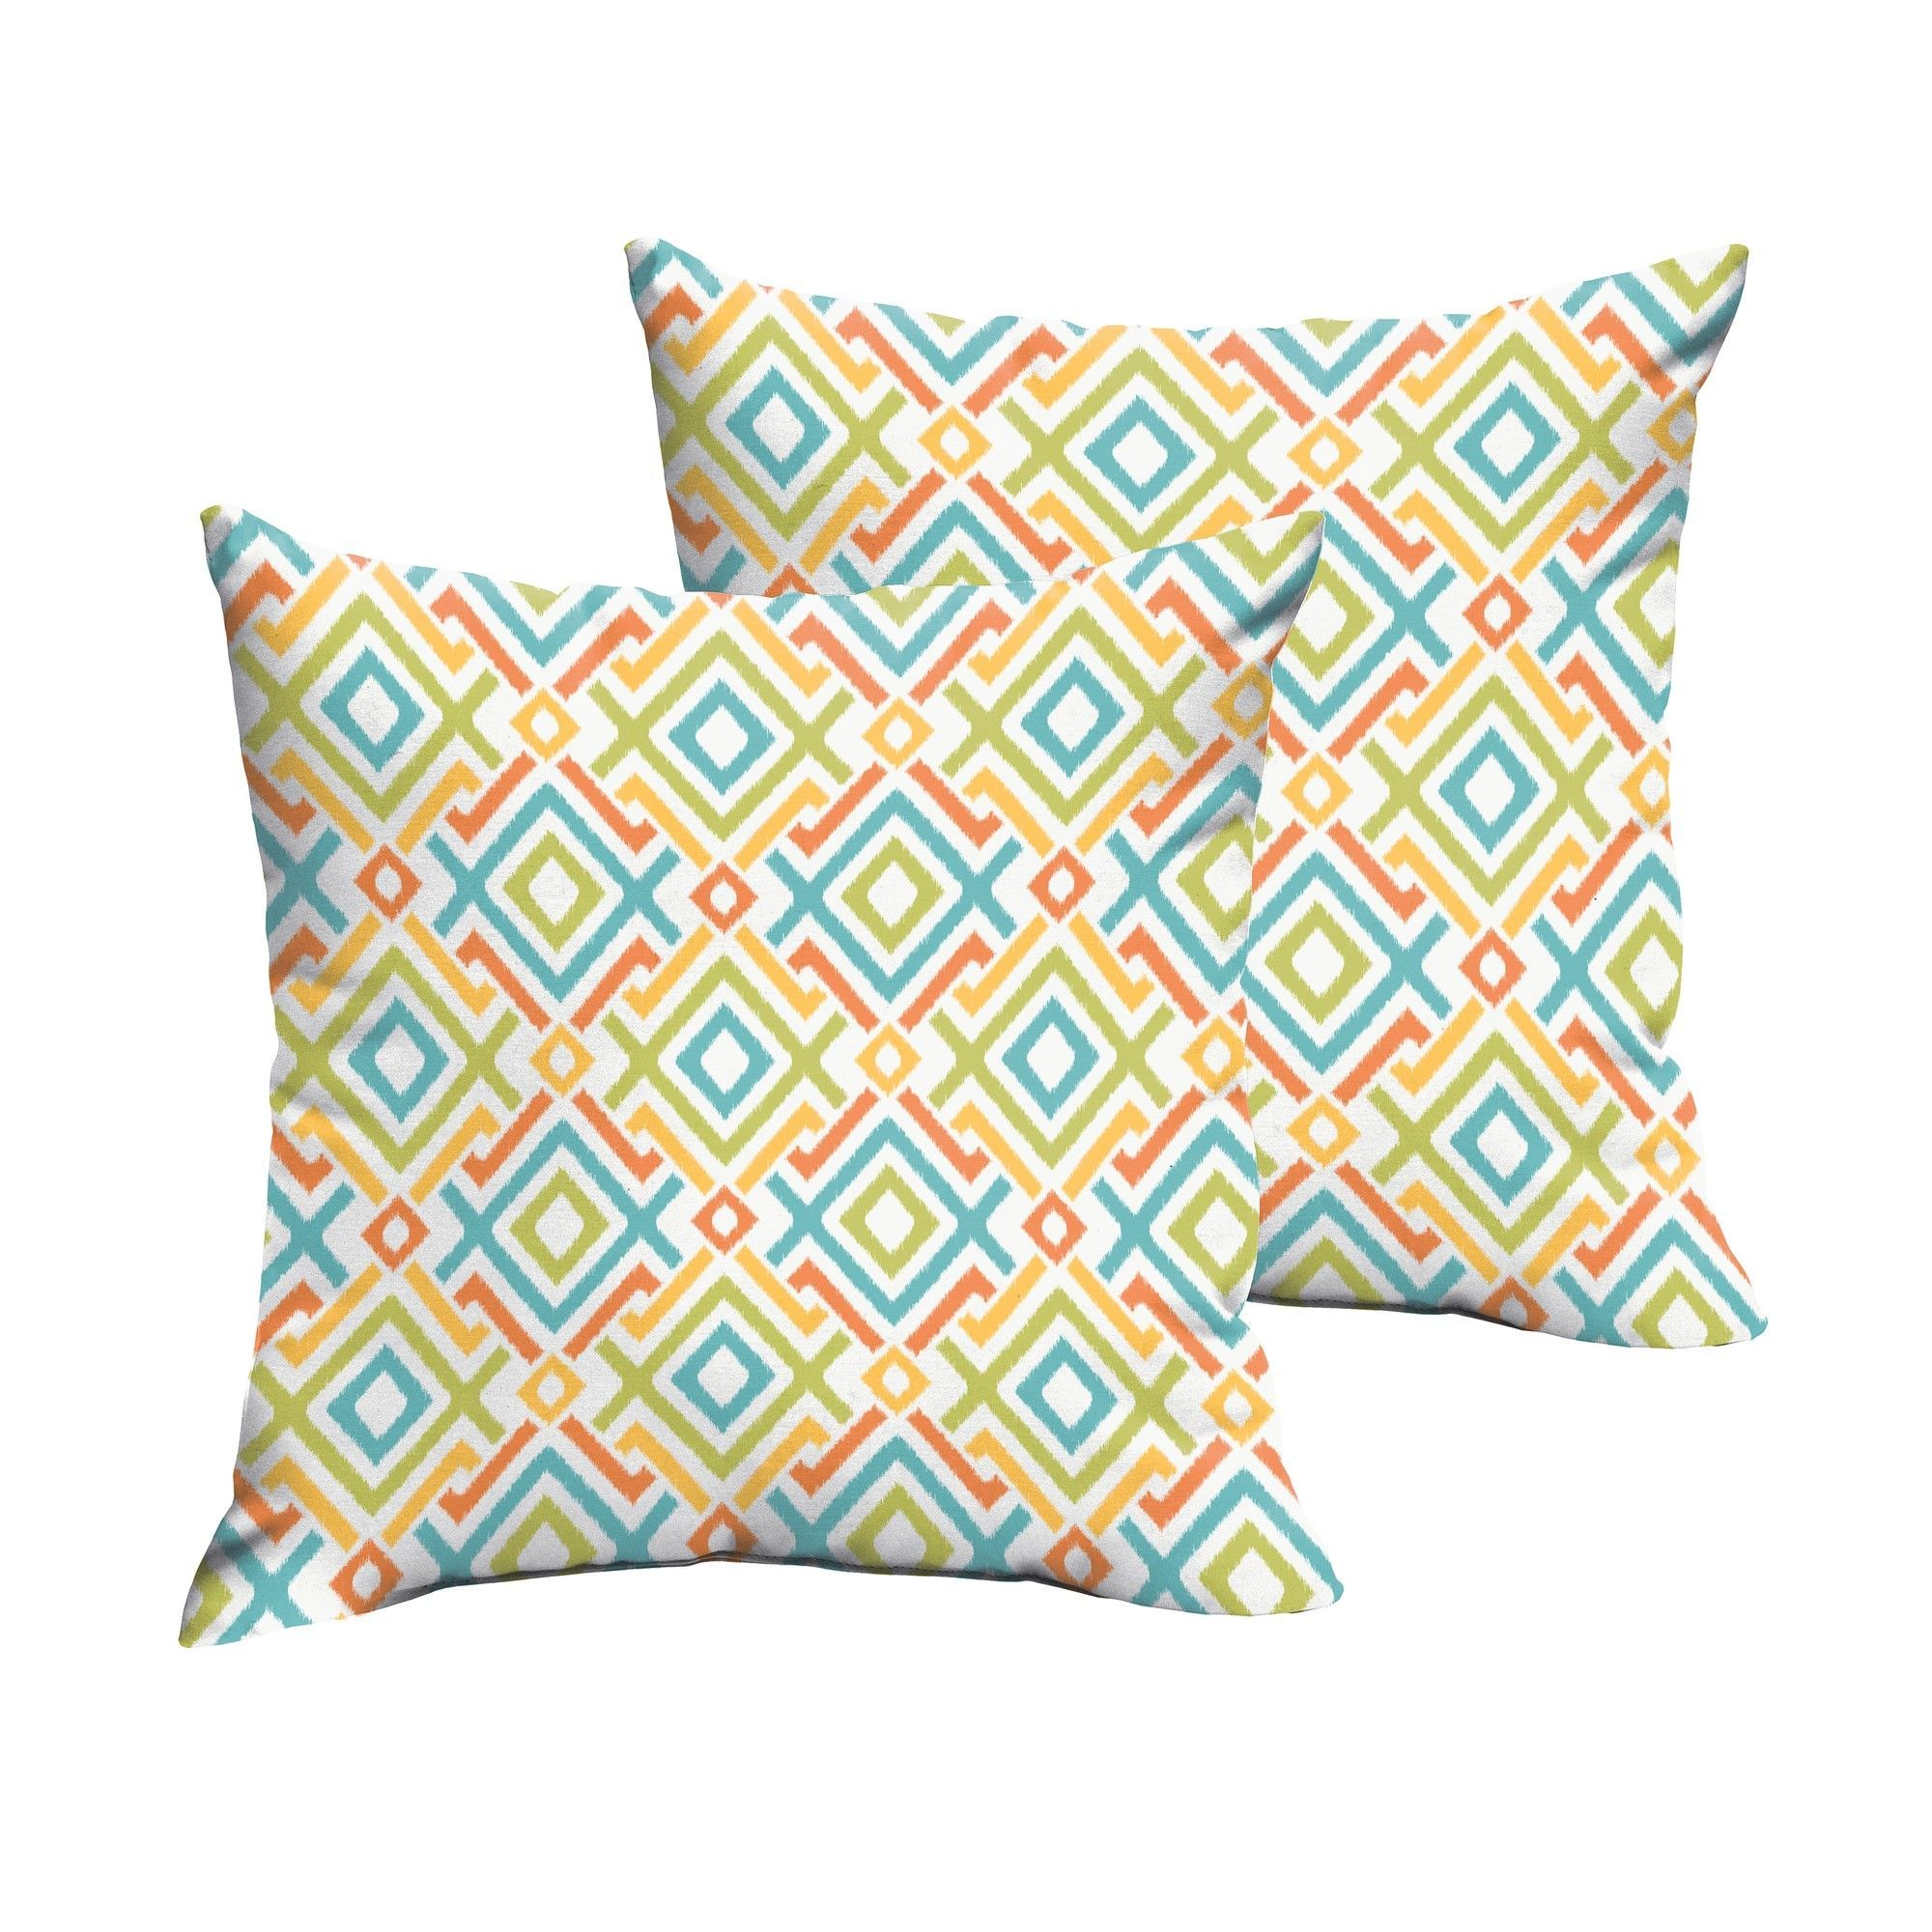 Terneuzen Indoor/Outdoor Throw Pillow